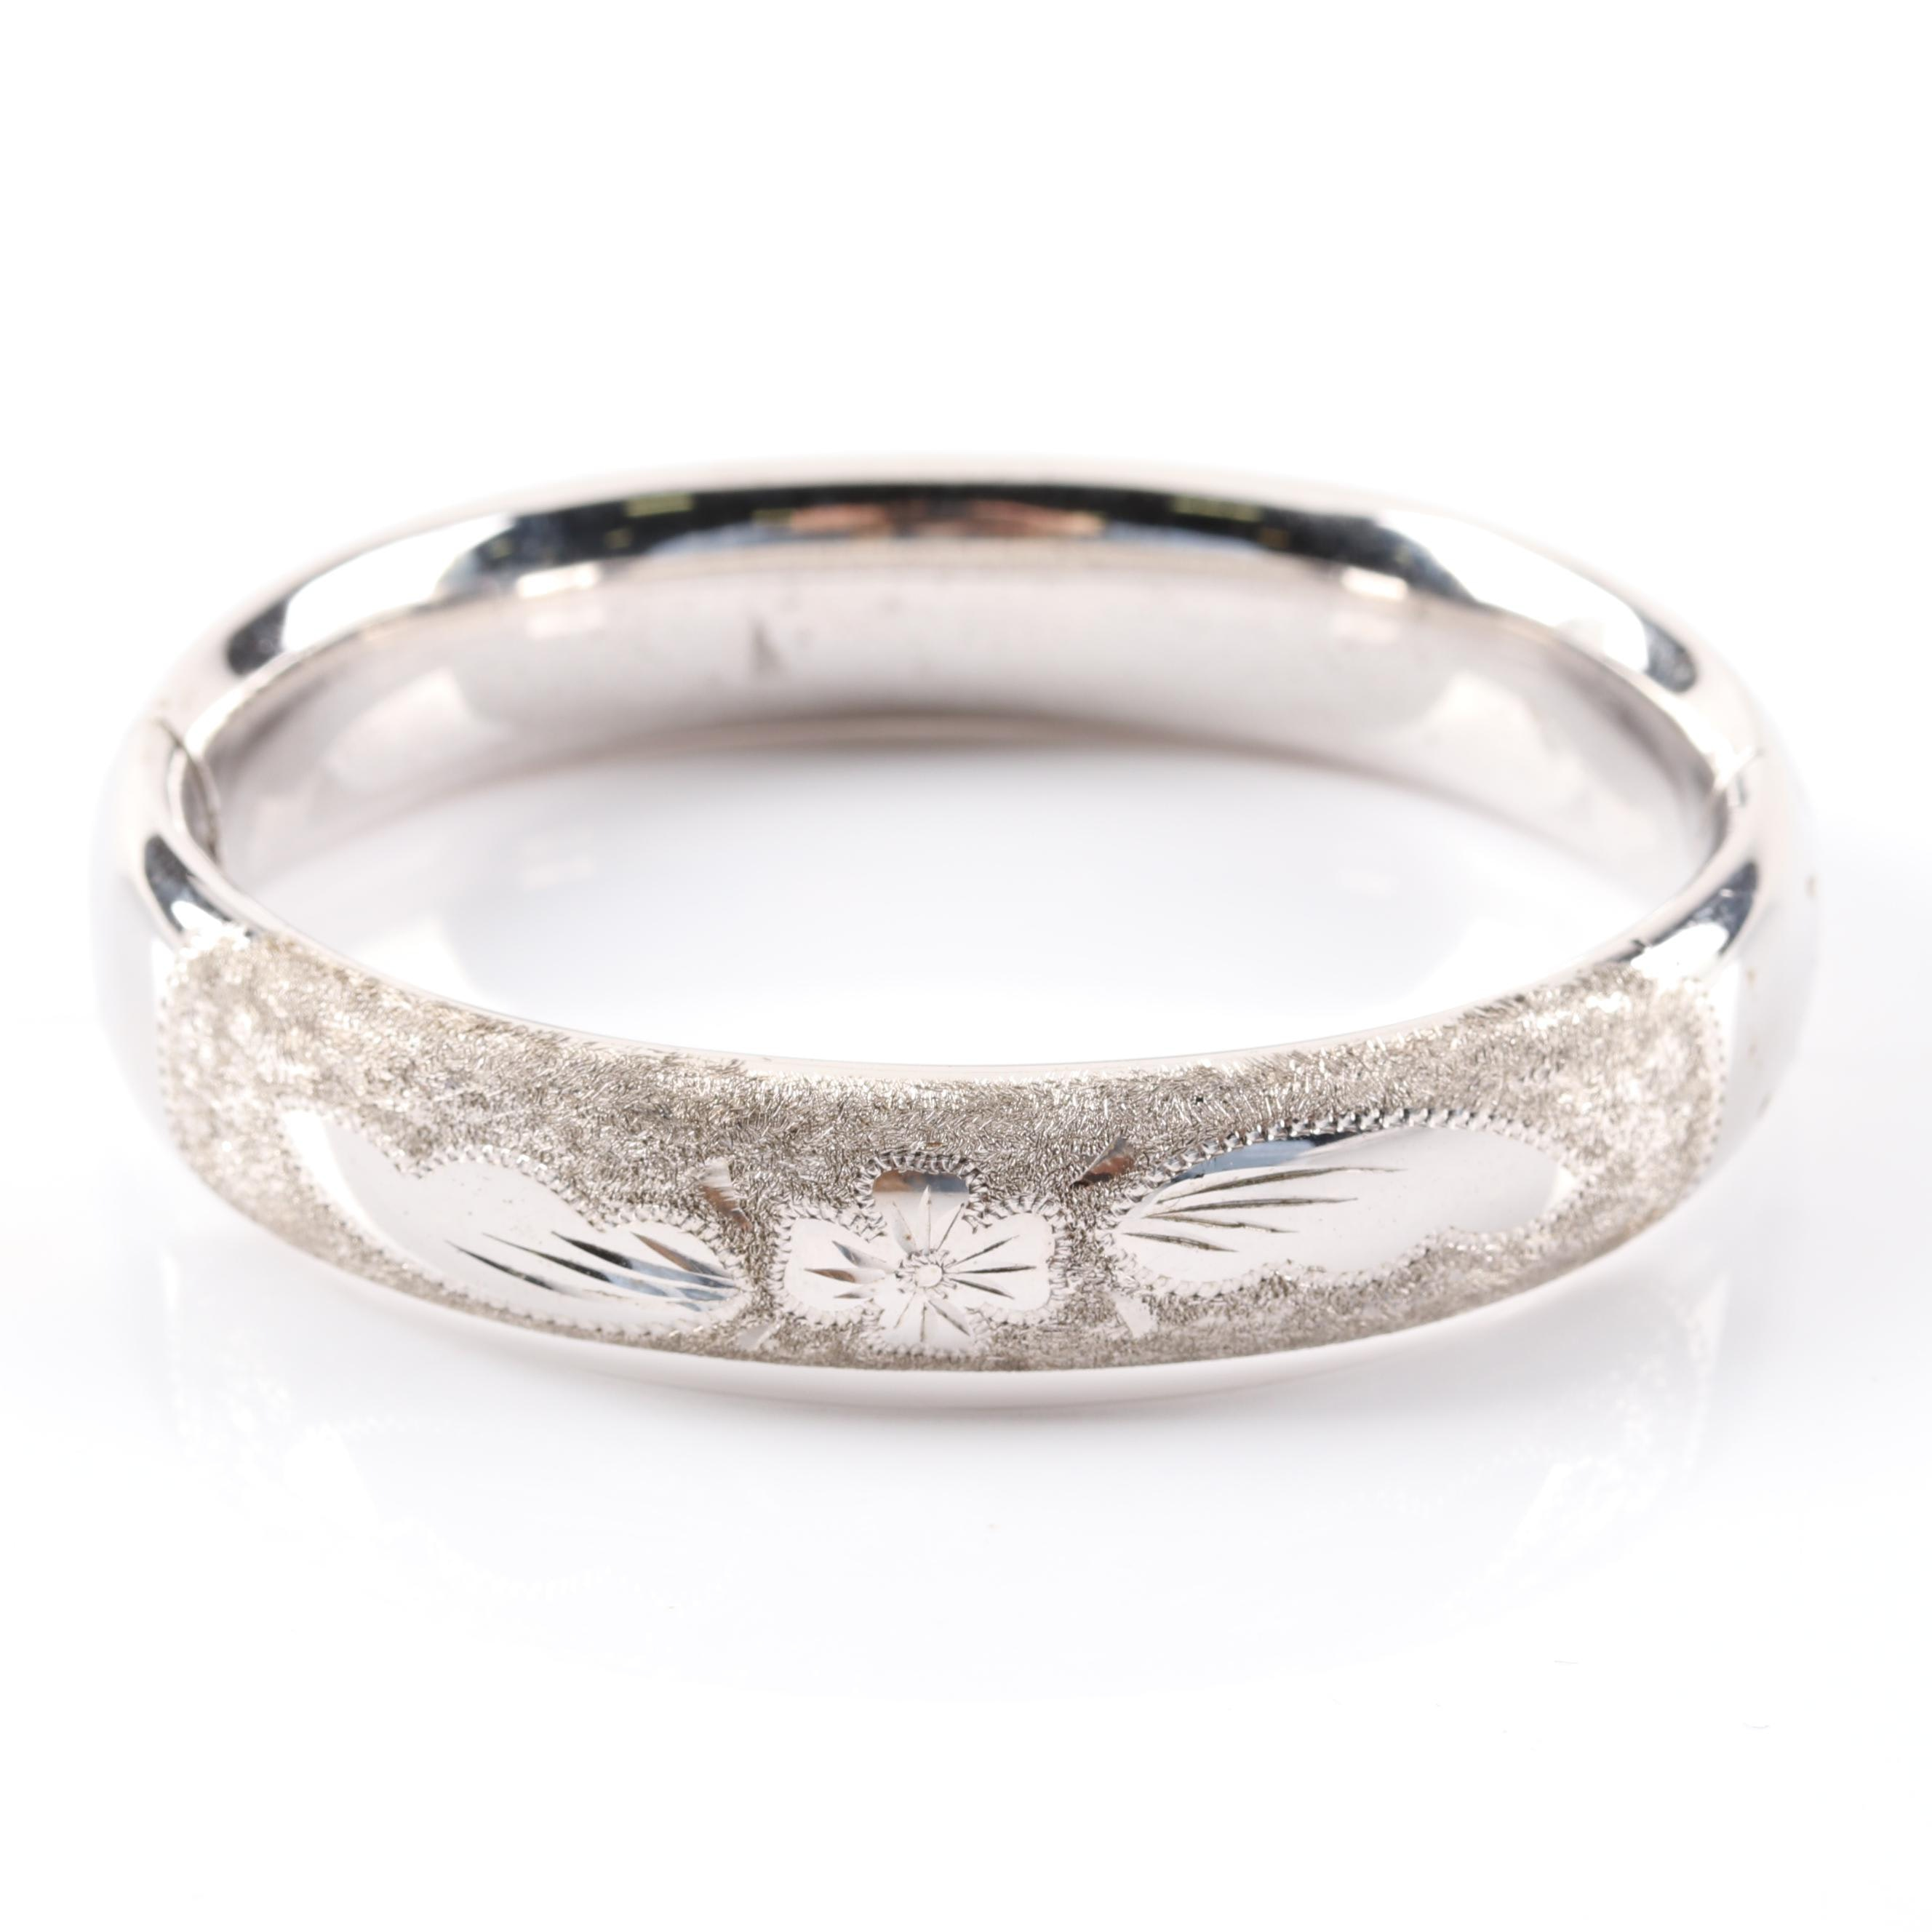 Kestenmade Sterling Silver Etched Bangle Bracelet